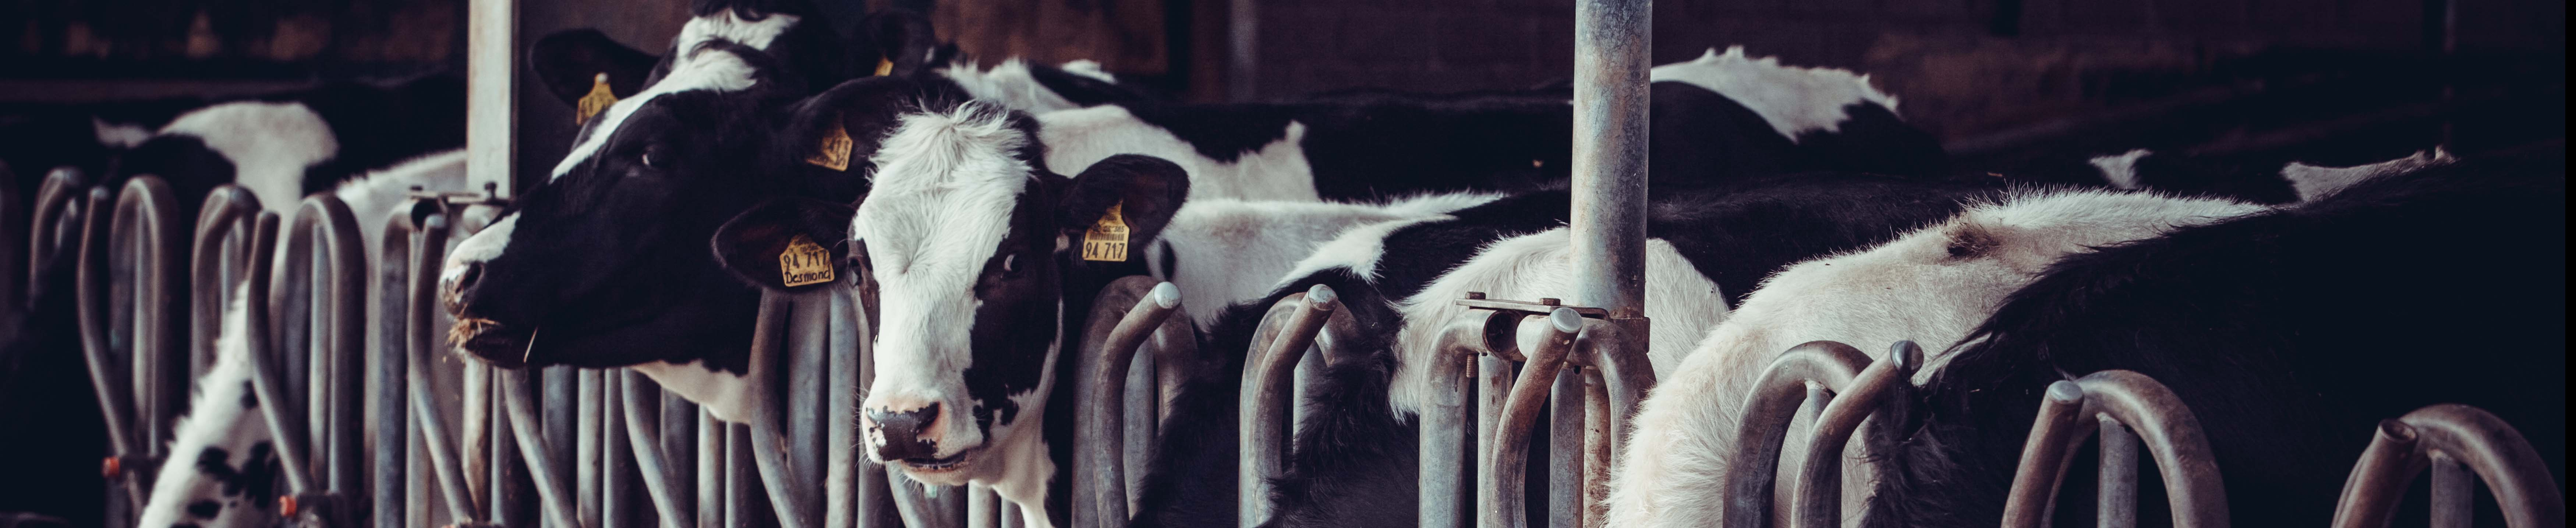 Dairies use Chillers from BV Thermal Systems